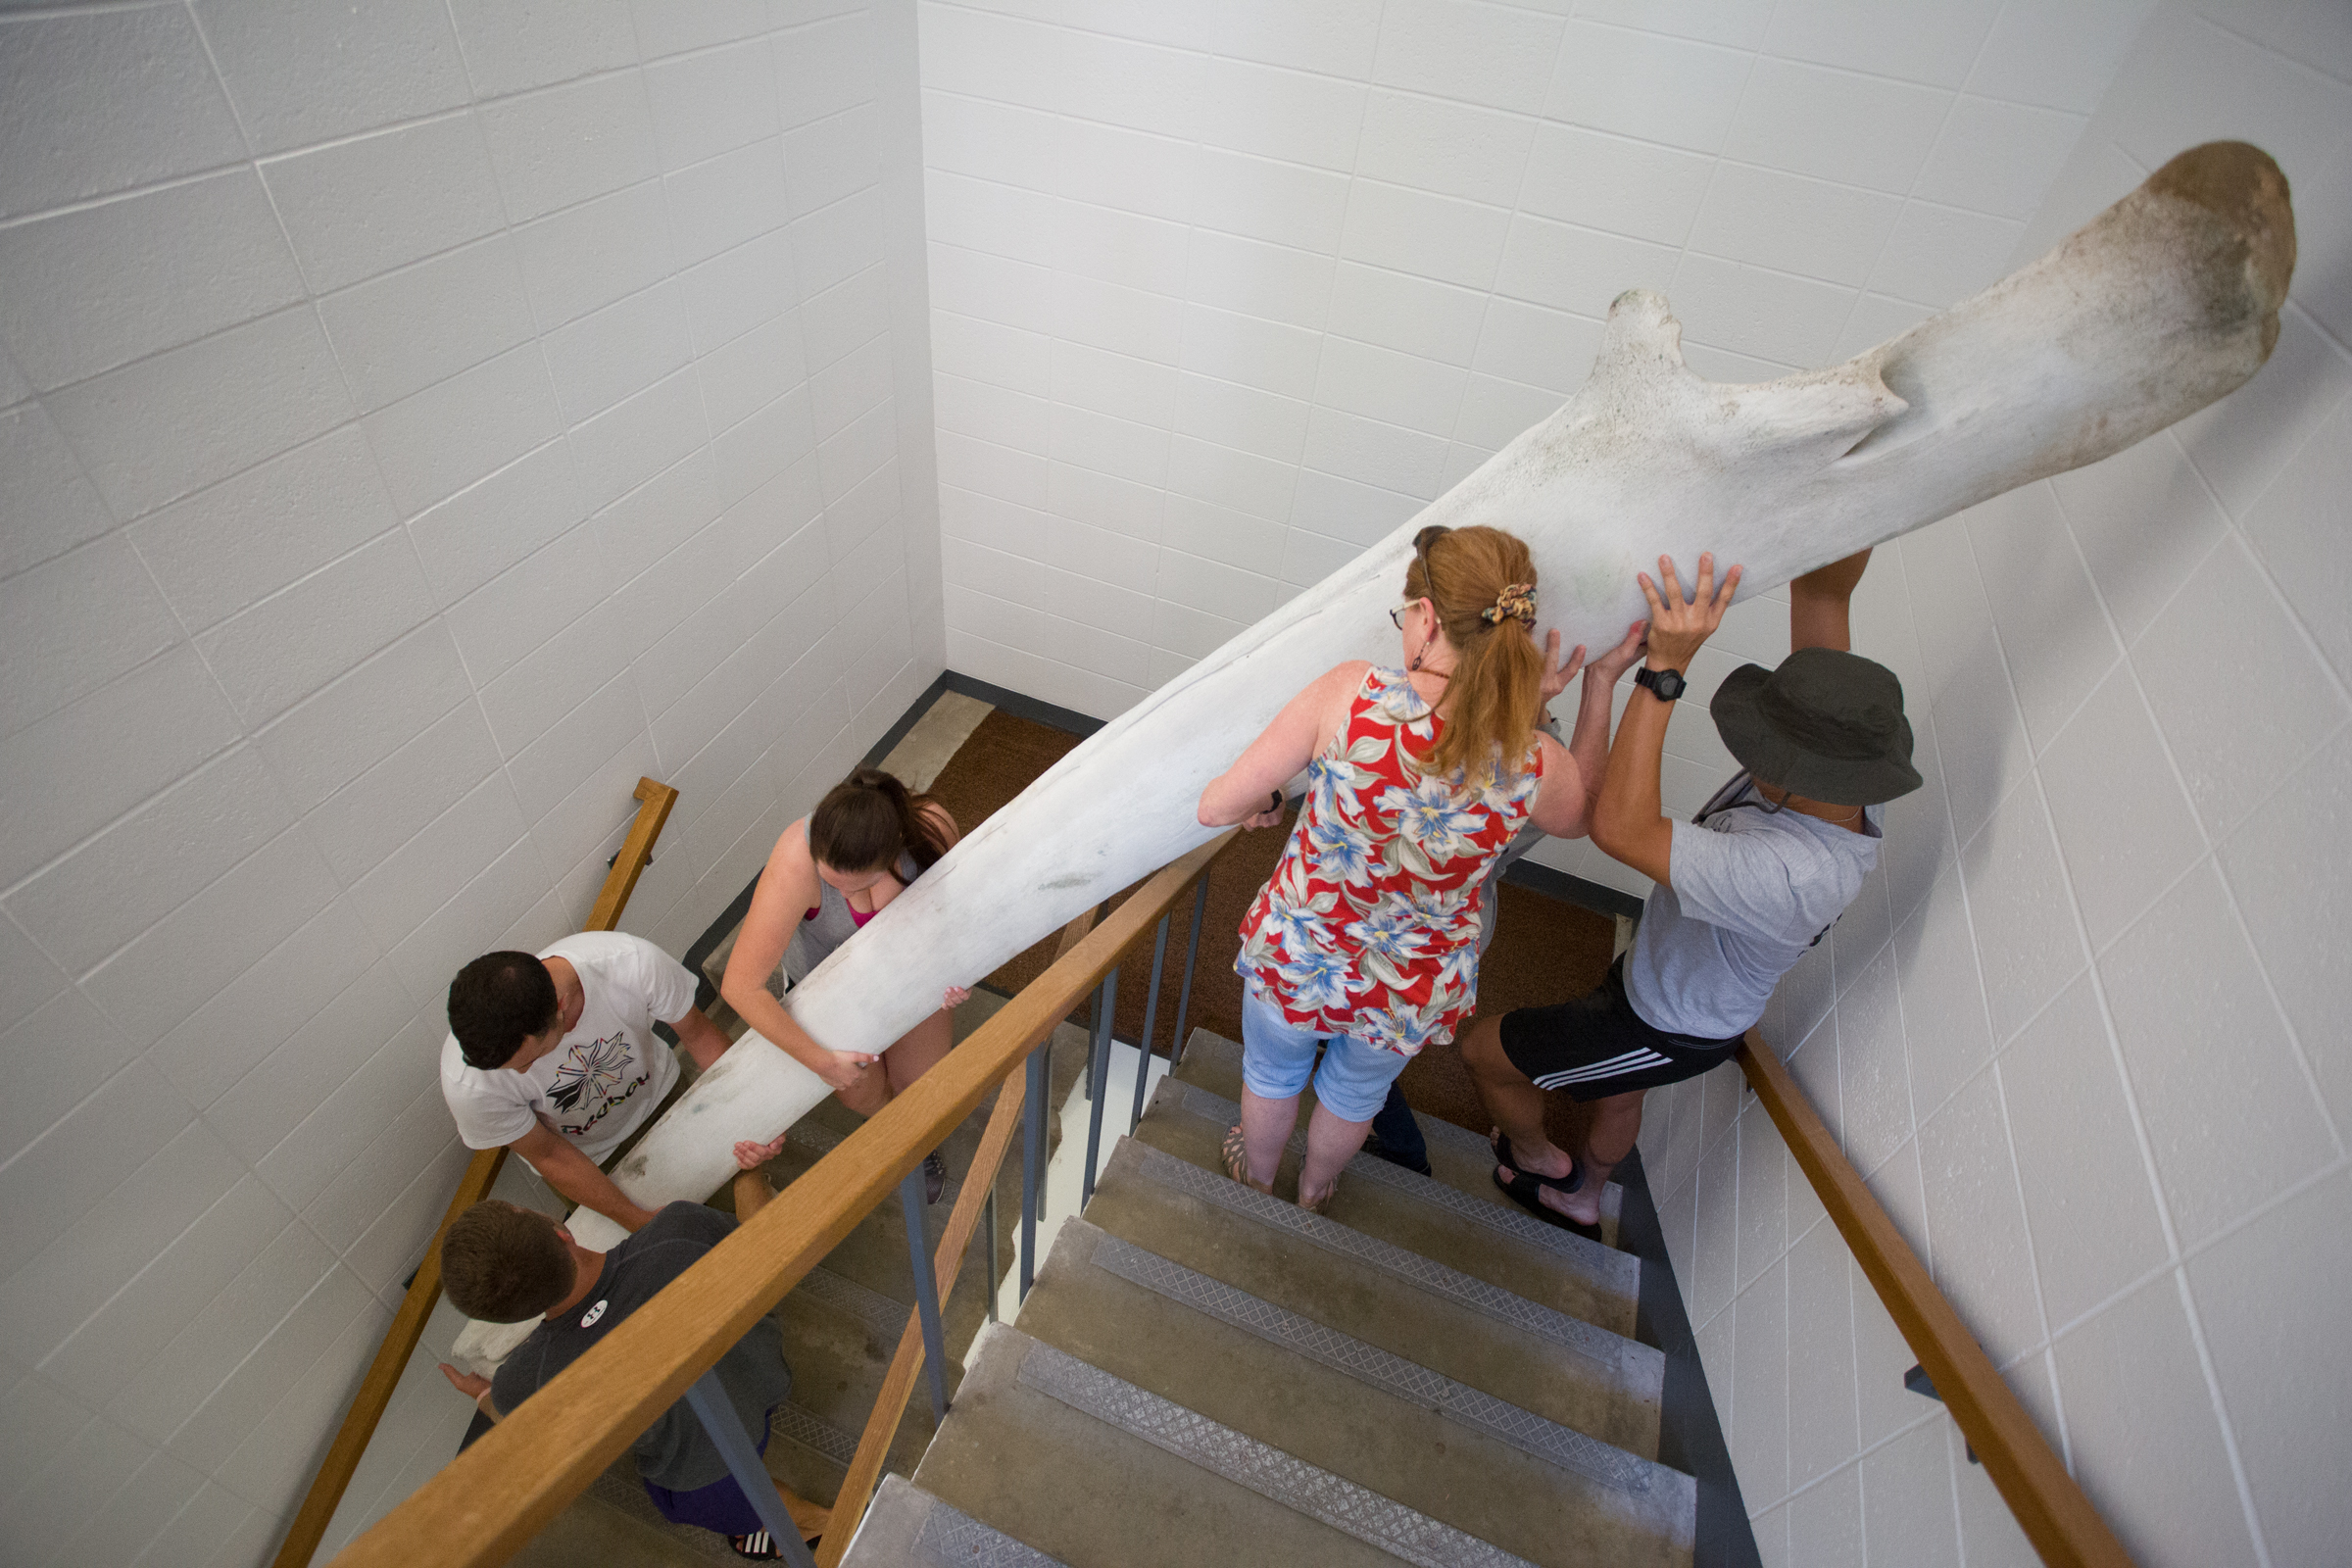 Students move jaw bone through stairwell in the Knox College Umbeck Science-Mathematics Center